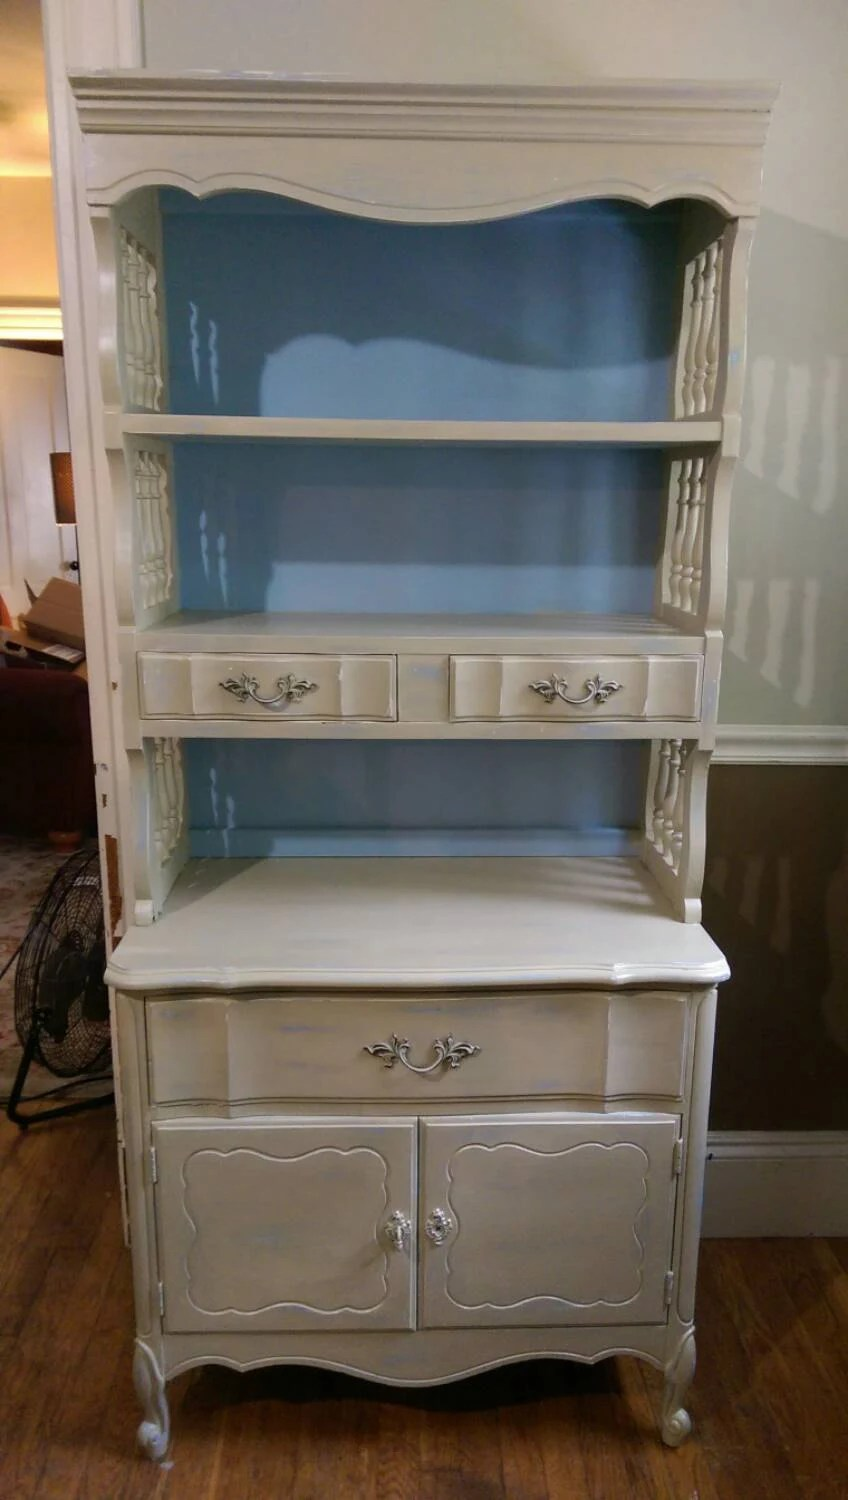 Chalk Paint French Provincial Hutch Shelves Bureau Dining Room Kids Room Nursery Storage Shabby